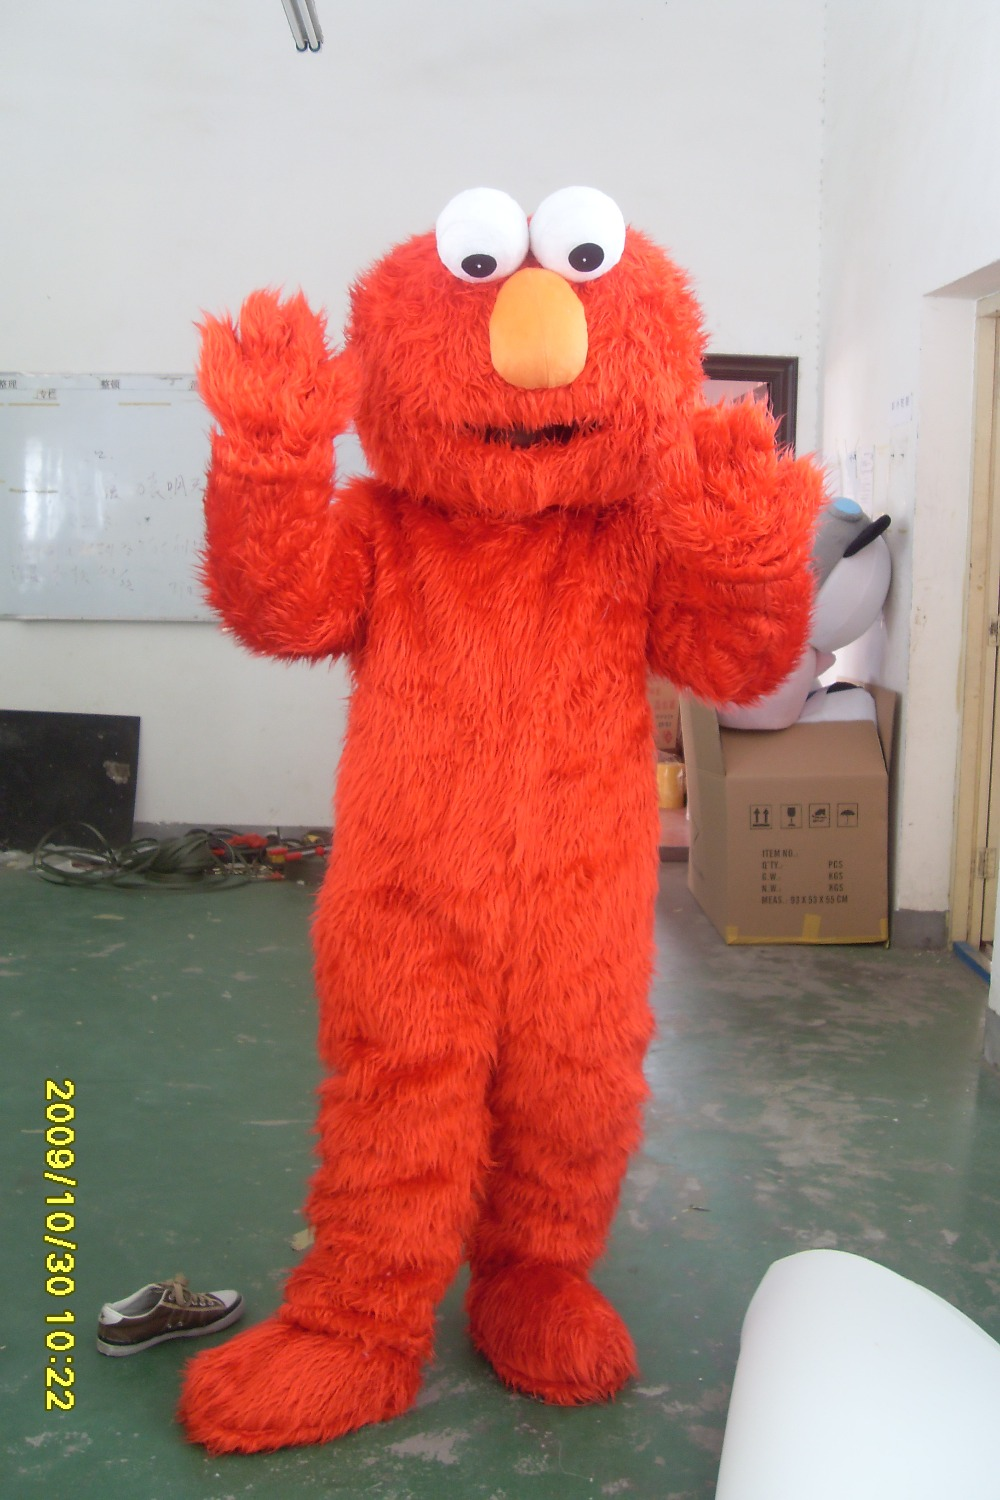 high quality adult elmo mascot costumes for sale halloween outfit fancy dress suit elmo adult clothes - Halloween Costumes Elmo